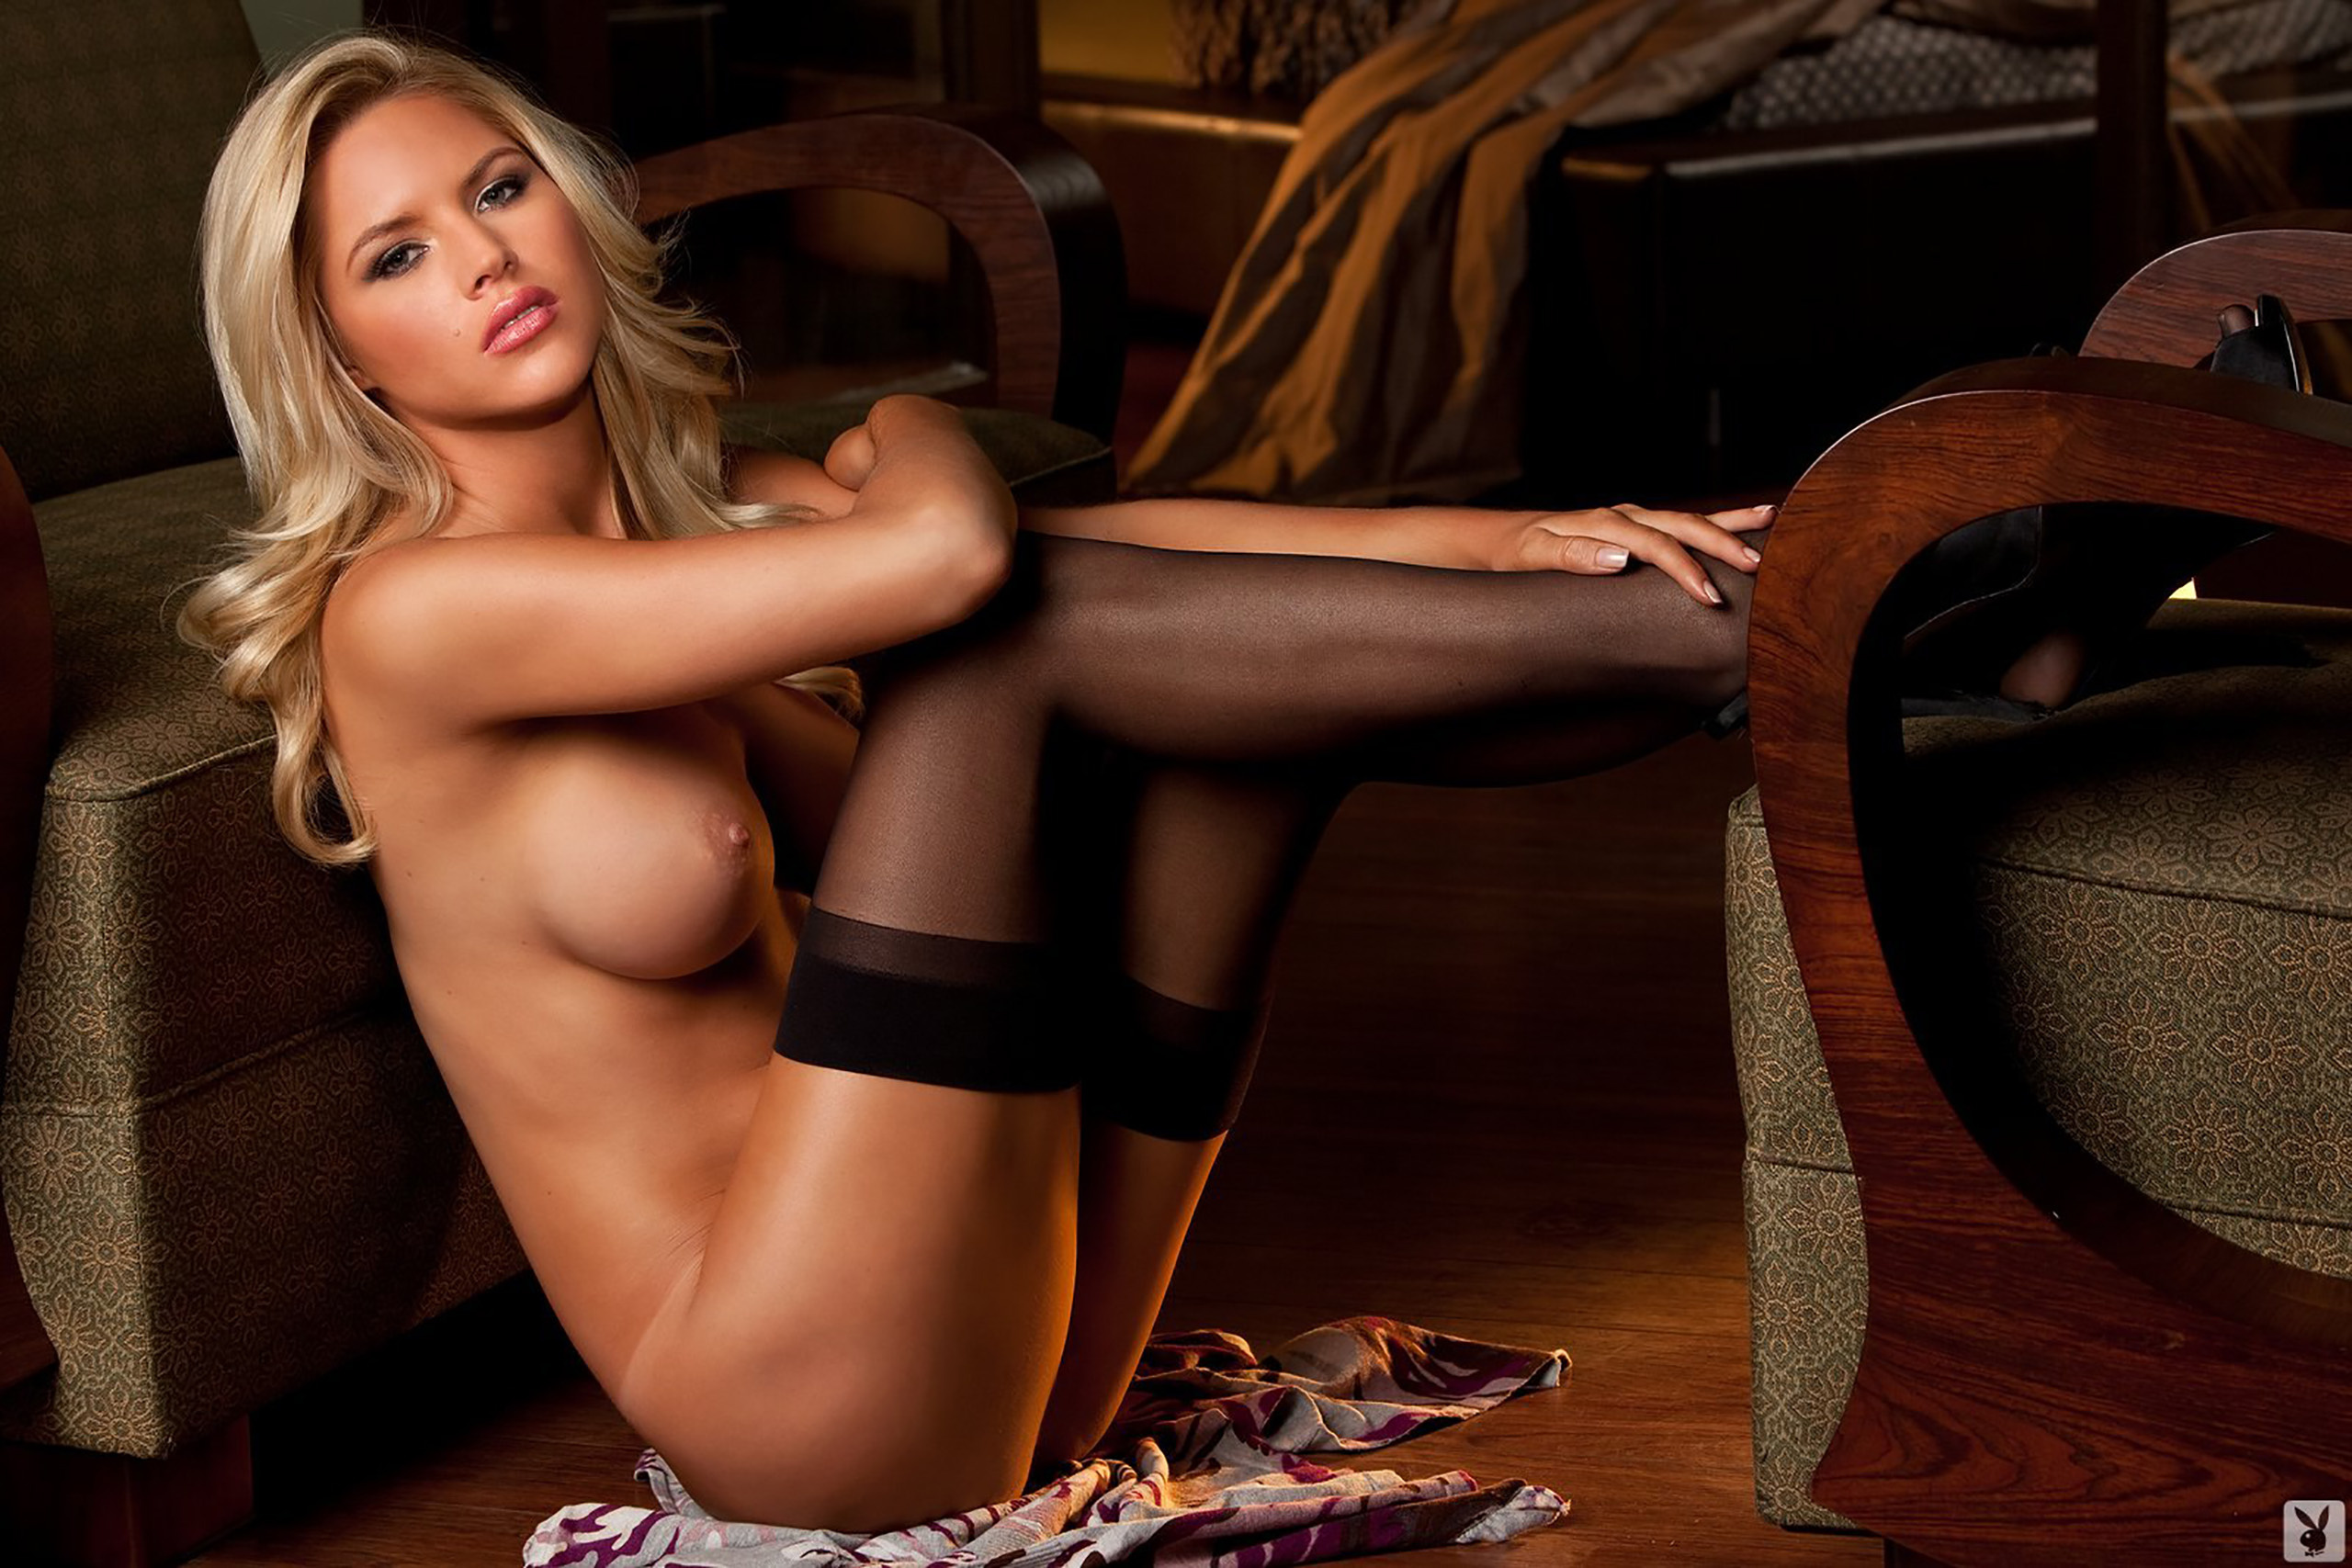 11 ashley mattingly hd wallpapers and photos - ftopx